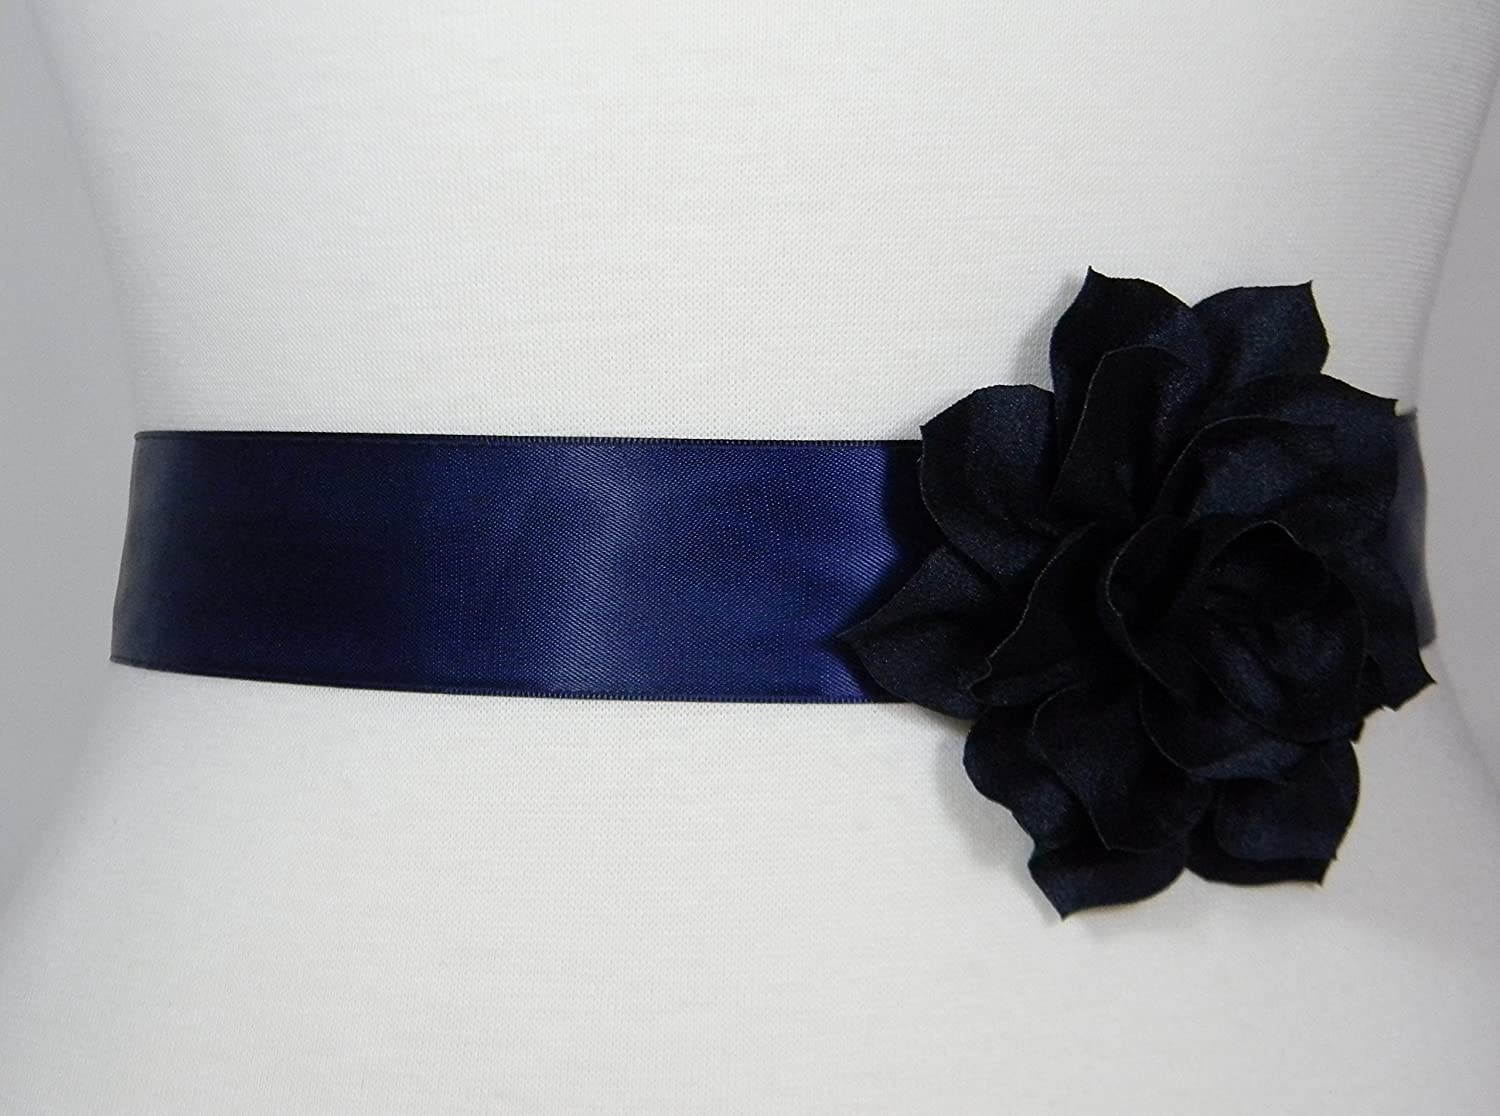 Navy Blue Bridal Sash, Wedding Belt, Bridal Belt, Flower Girl Dress Sash, Bridesmaid Belt, Satin Sash, Wedding Dress Belt, Simple Sash POSY